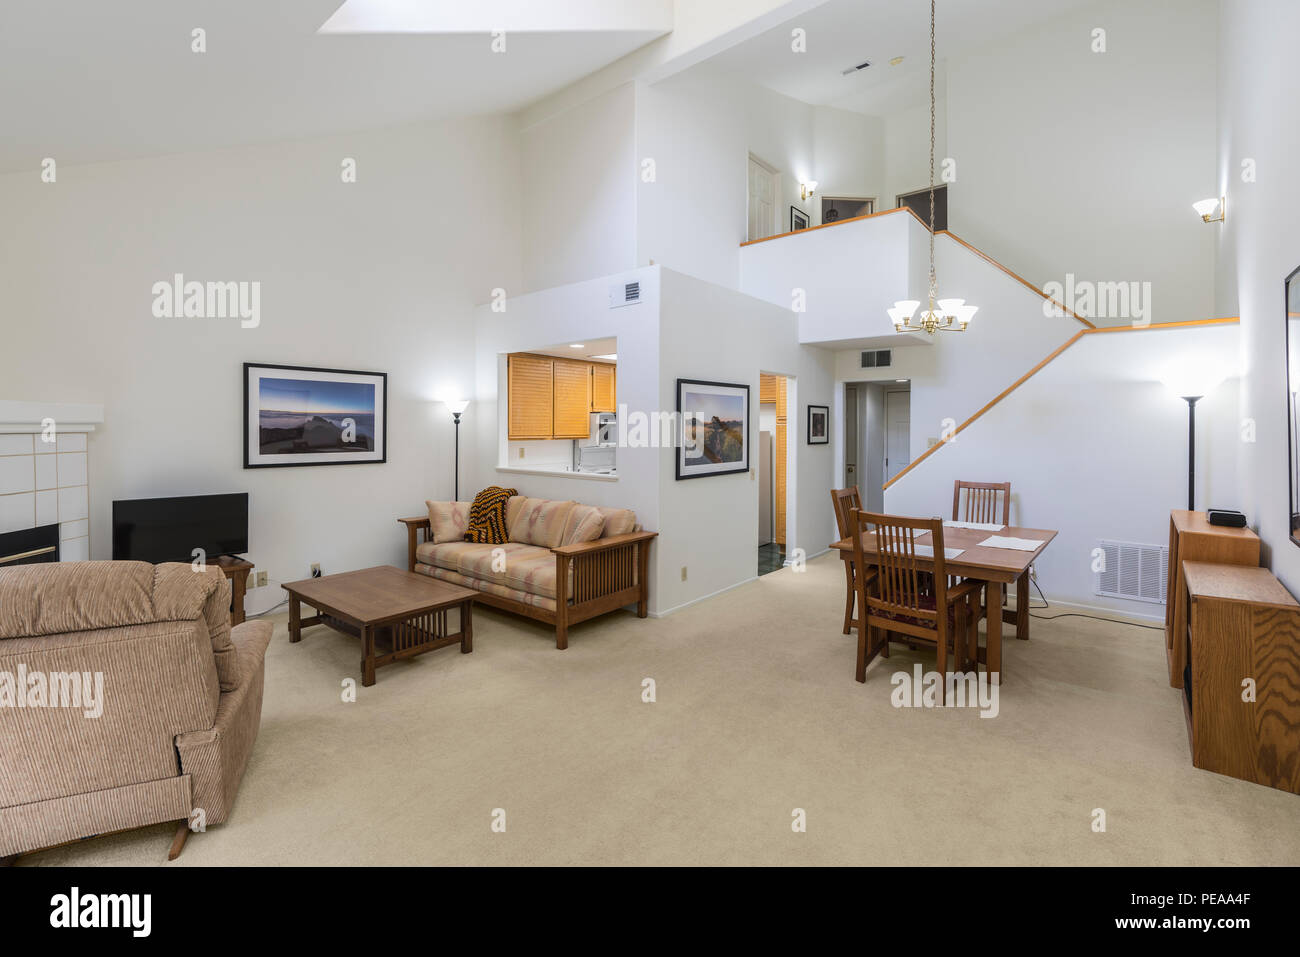 High ceiling condo living room.  Framed wall art is the photographers work and is included in the release. - Stock Image